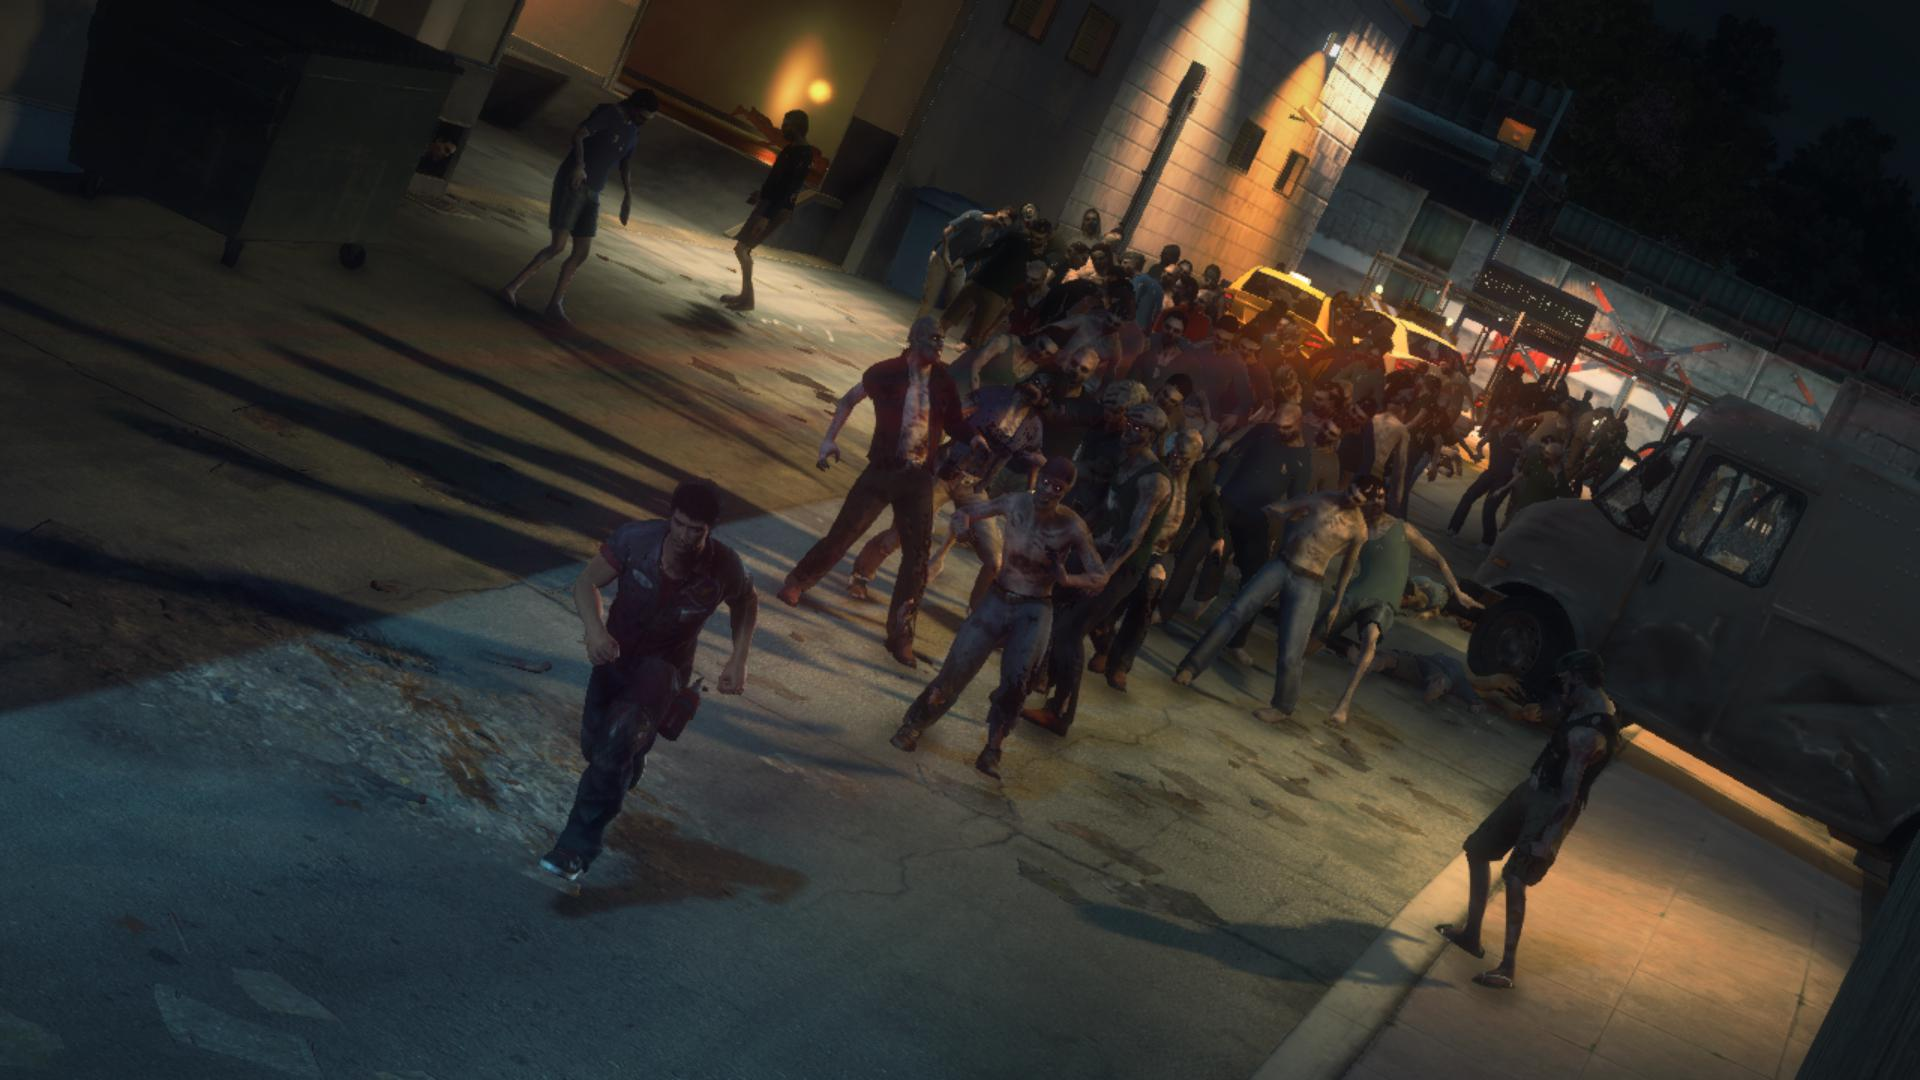 Dead Rising 3 coop Screenshots 16 Dead Rising 3 Gallery